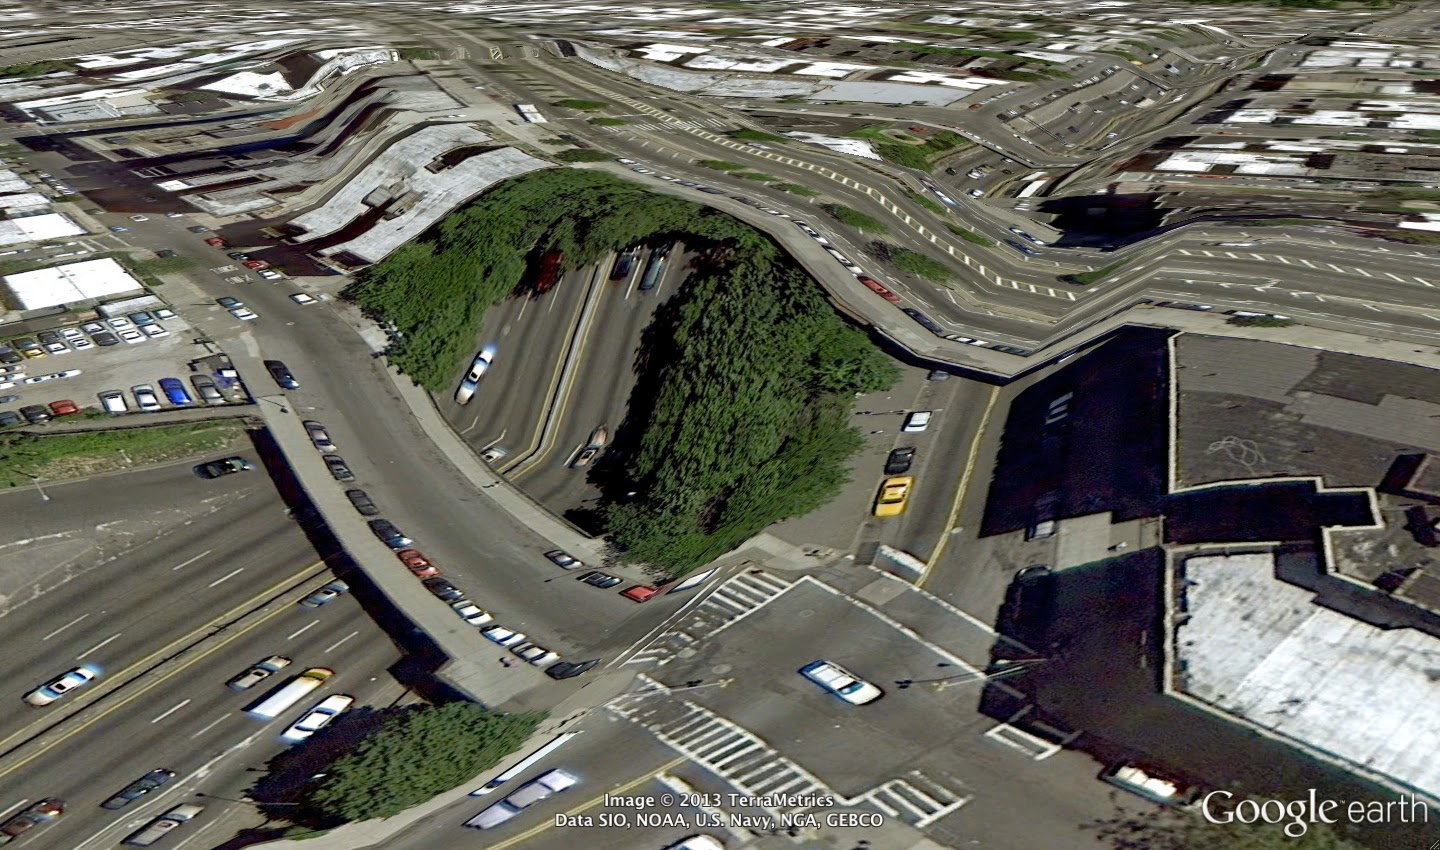 03-Bronx-Clement-Valla-Postcards-From-Google-Earth-www-designstack-co